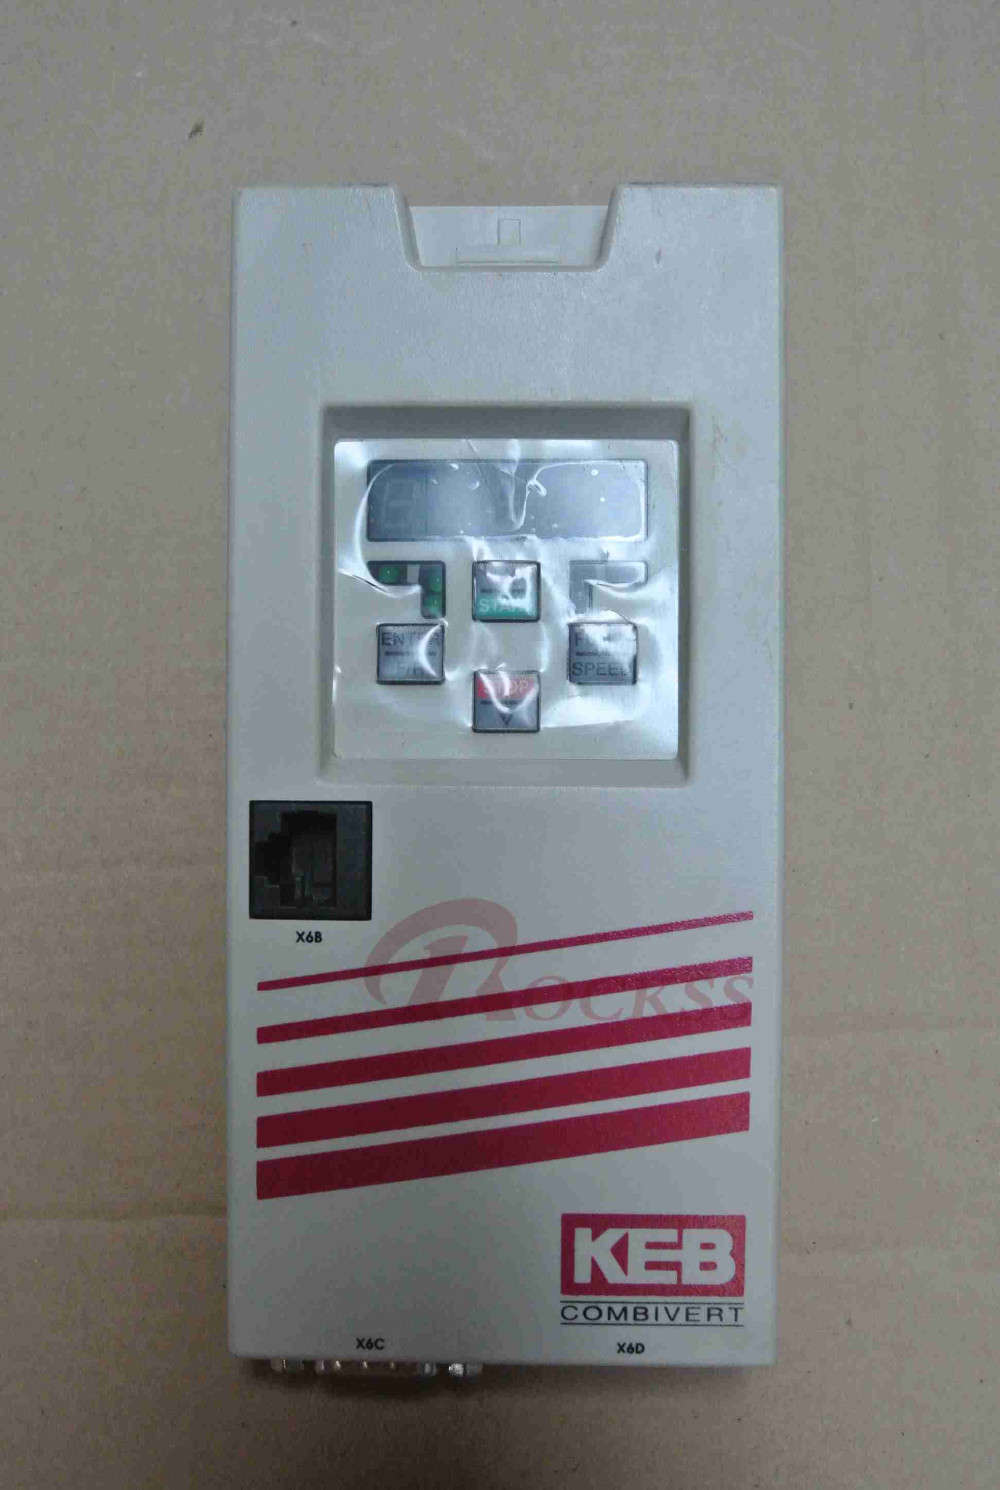 Brand new control panel 00f5060-5013 / ems